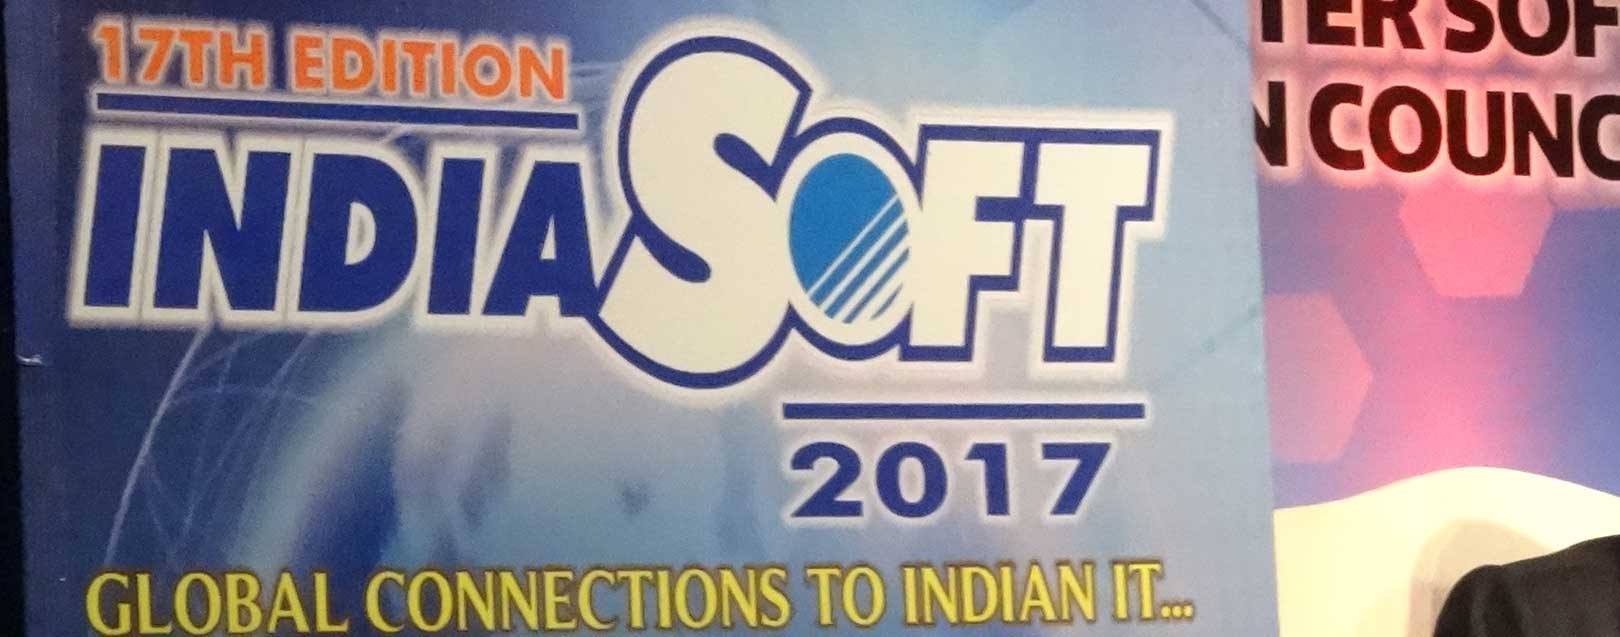 IndiaSoft 2017: connecting Indian IT with global buyers